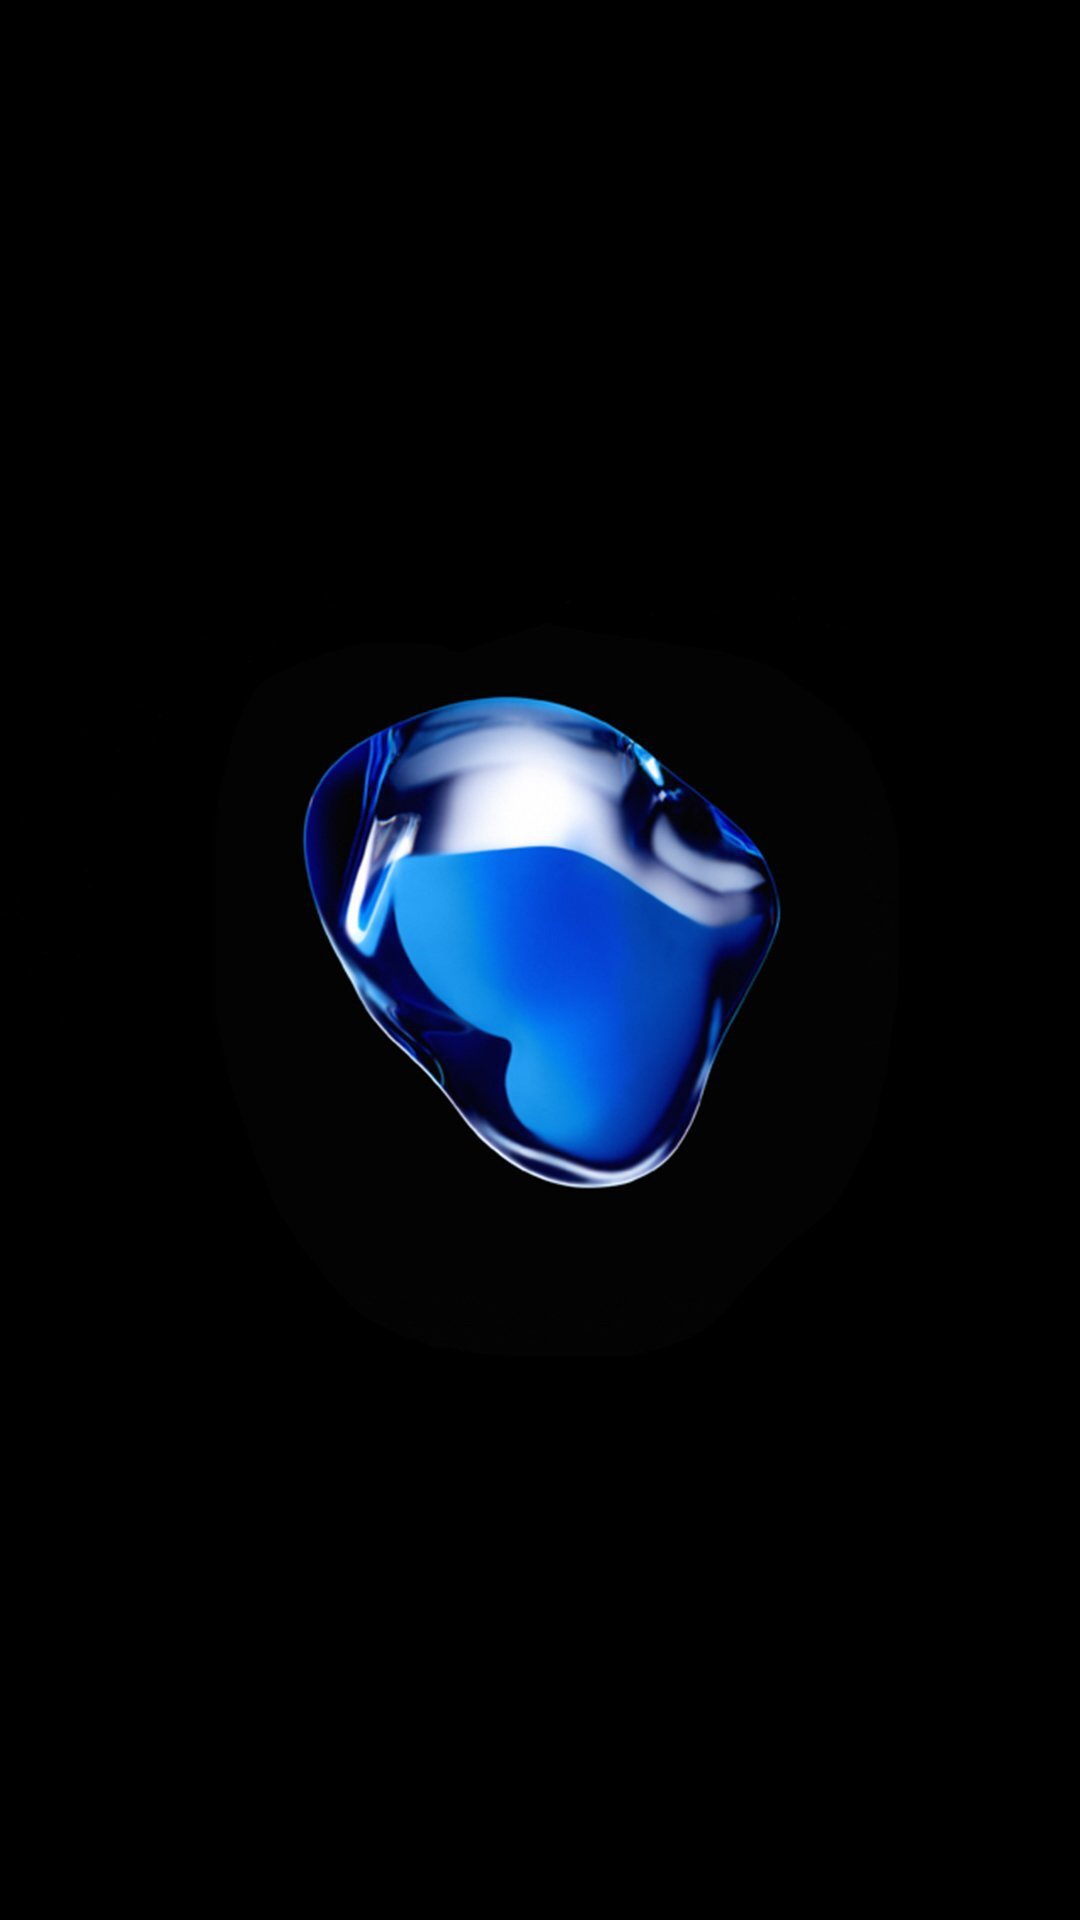 The Blue Blob Wallpaper In The Iphone 7 Ads Iphone Ipad